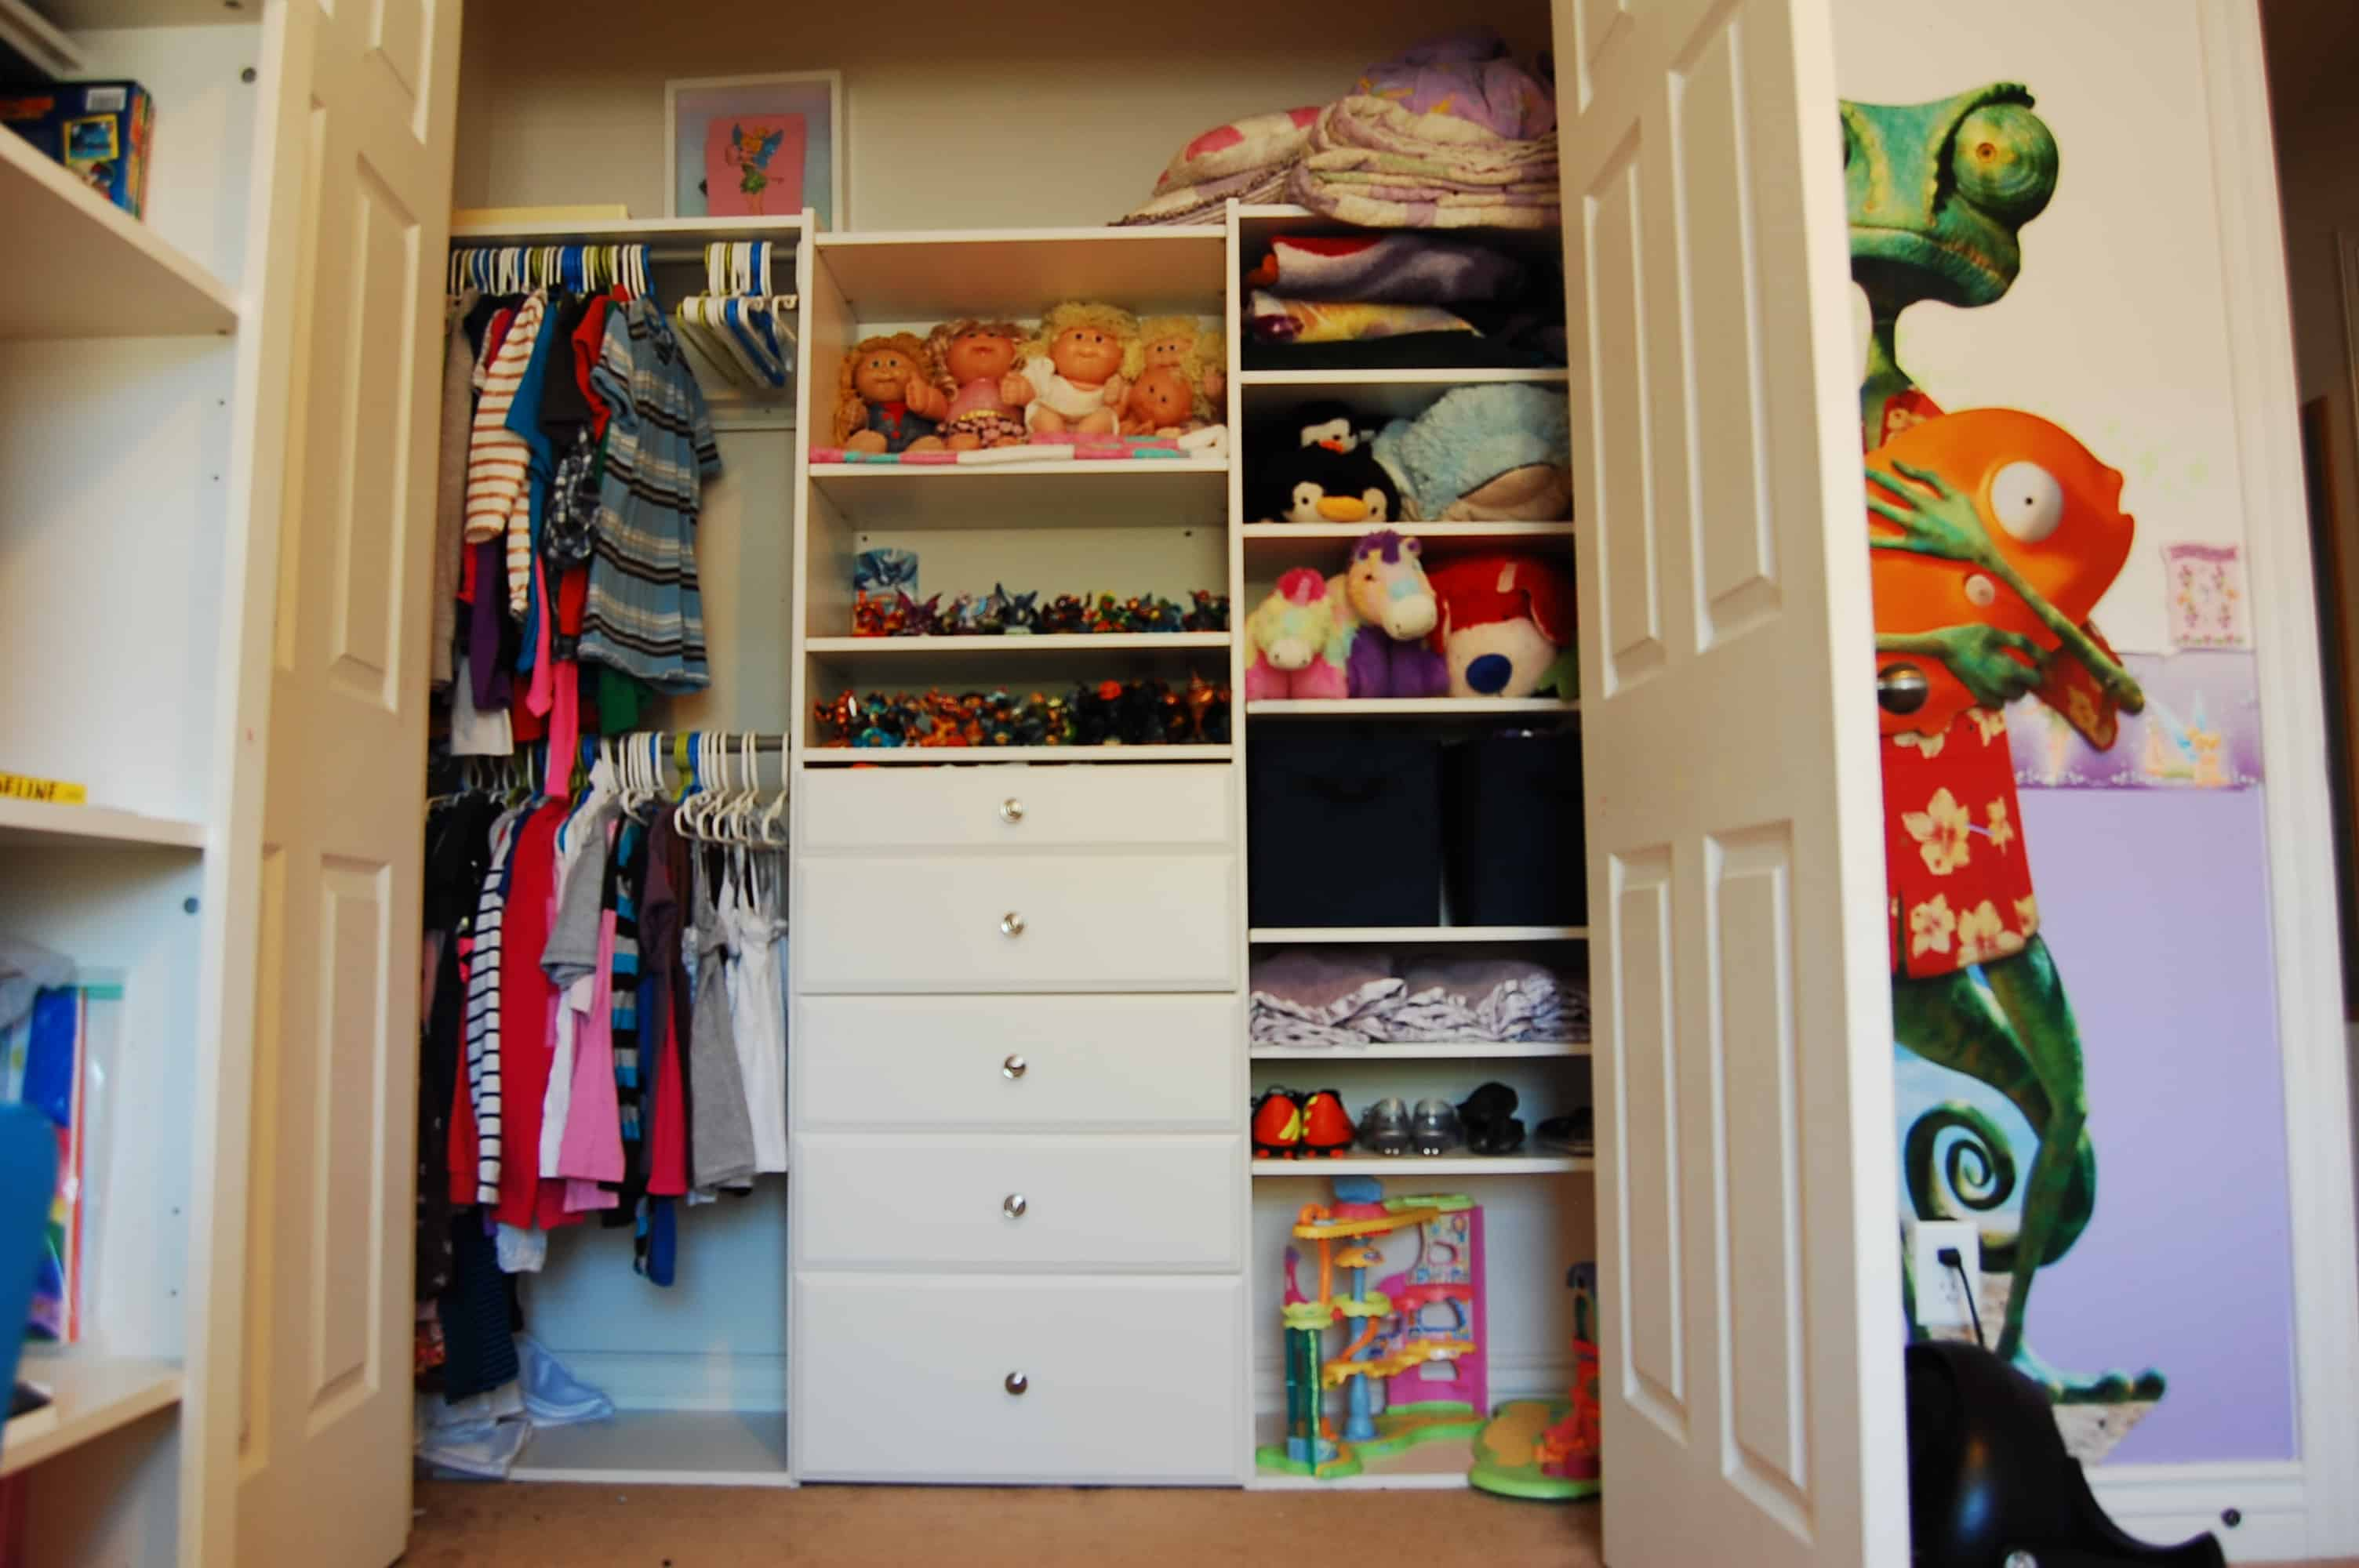 enchanting closets tower systems home depot closet walk white in with planner decoration drawers or bedroom ideas stewart martha for marthastewart homedepot